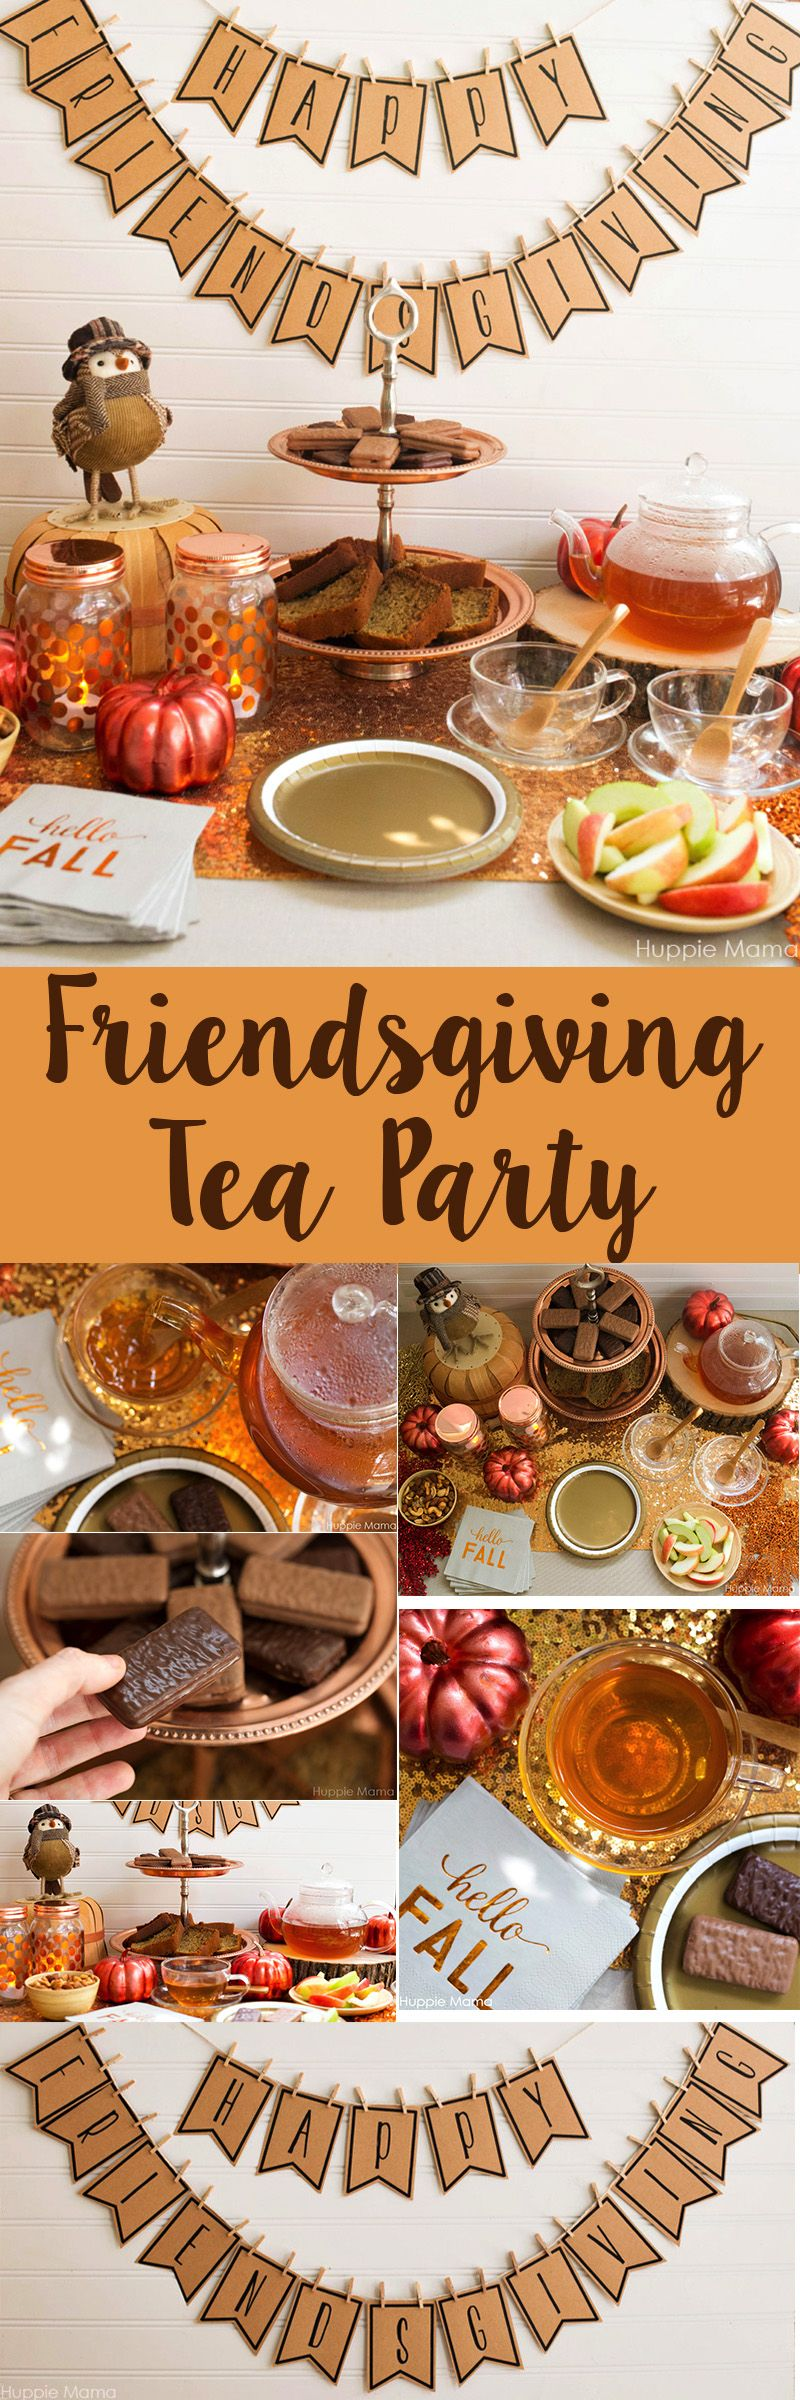 Enjoy This Pre Thanksgiving Friendsgiving Tea Party, With A Printable Banner